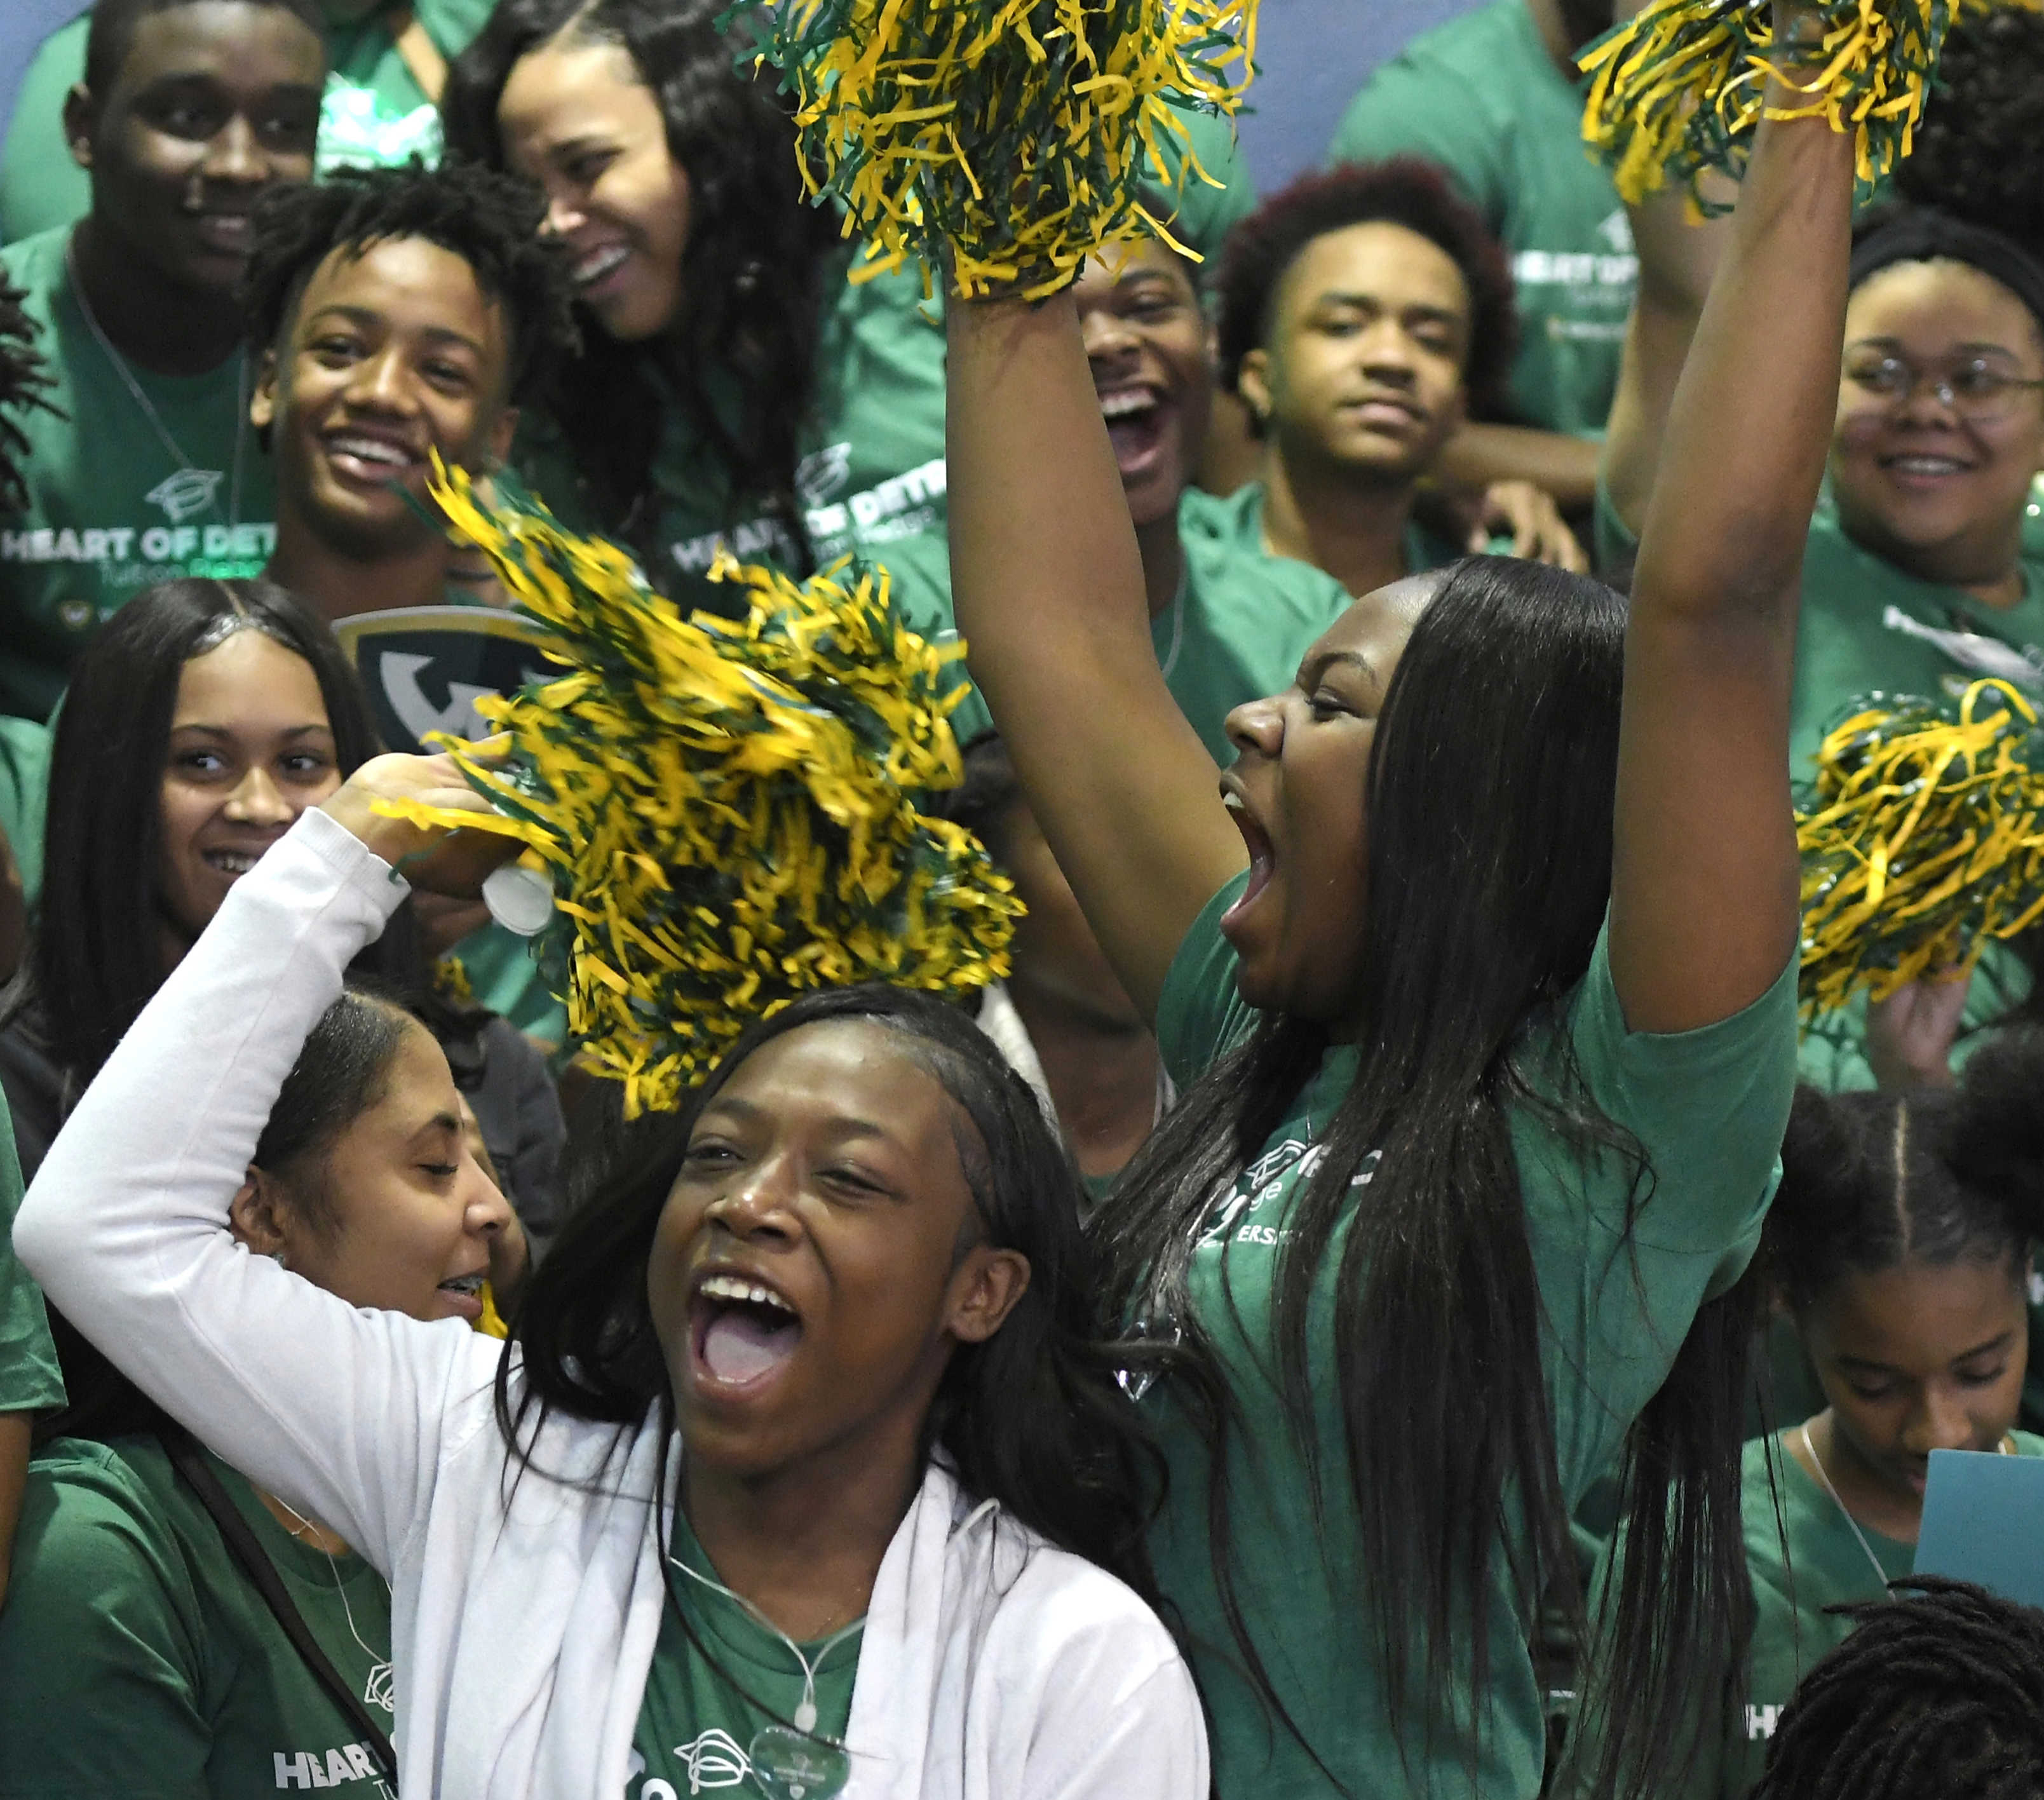 Wayne State introduces Heart of Detroit Tuition Pledge